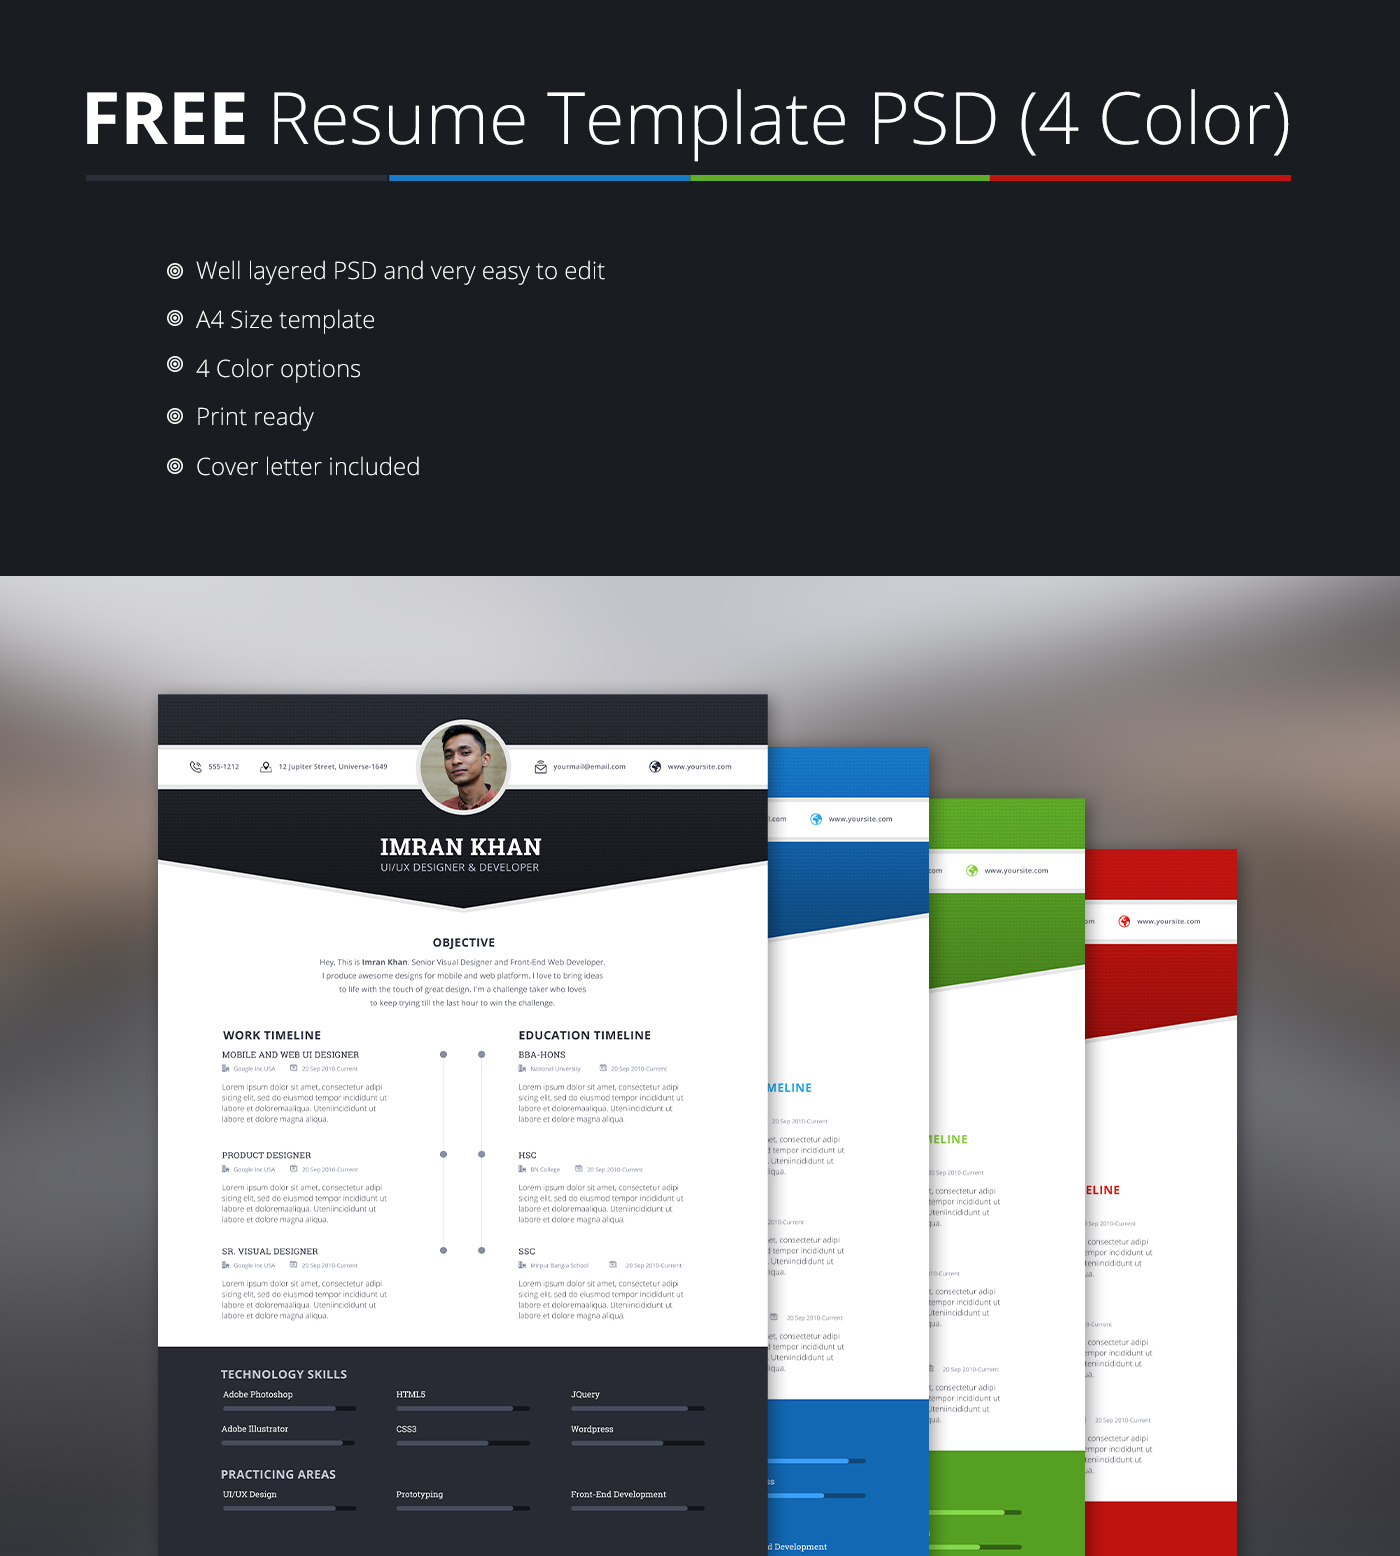 Free Psd Resume Template In Four Colors 1